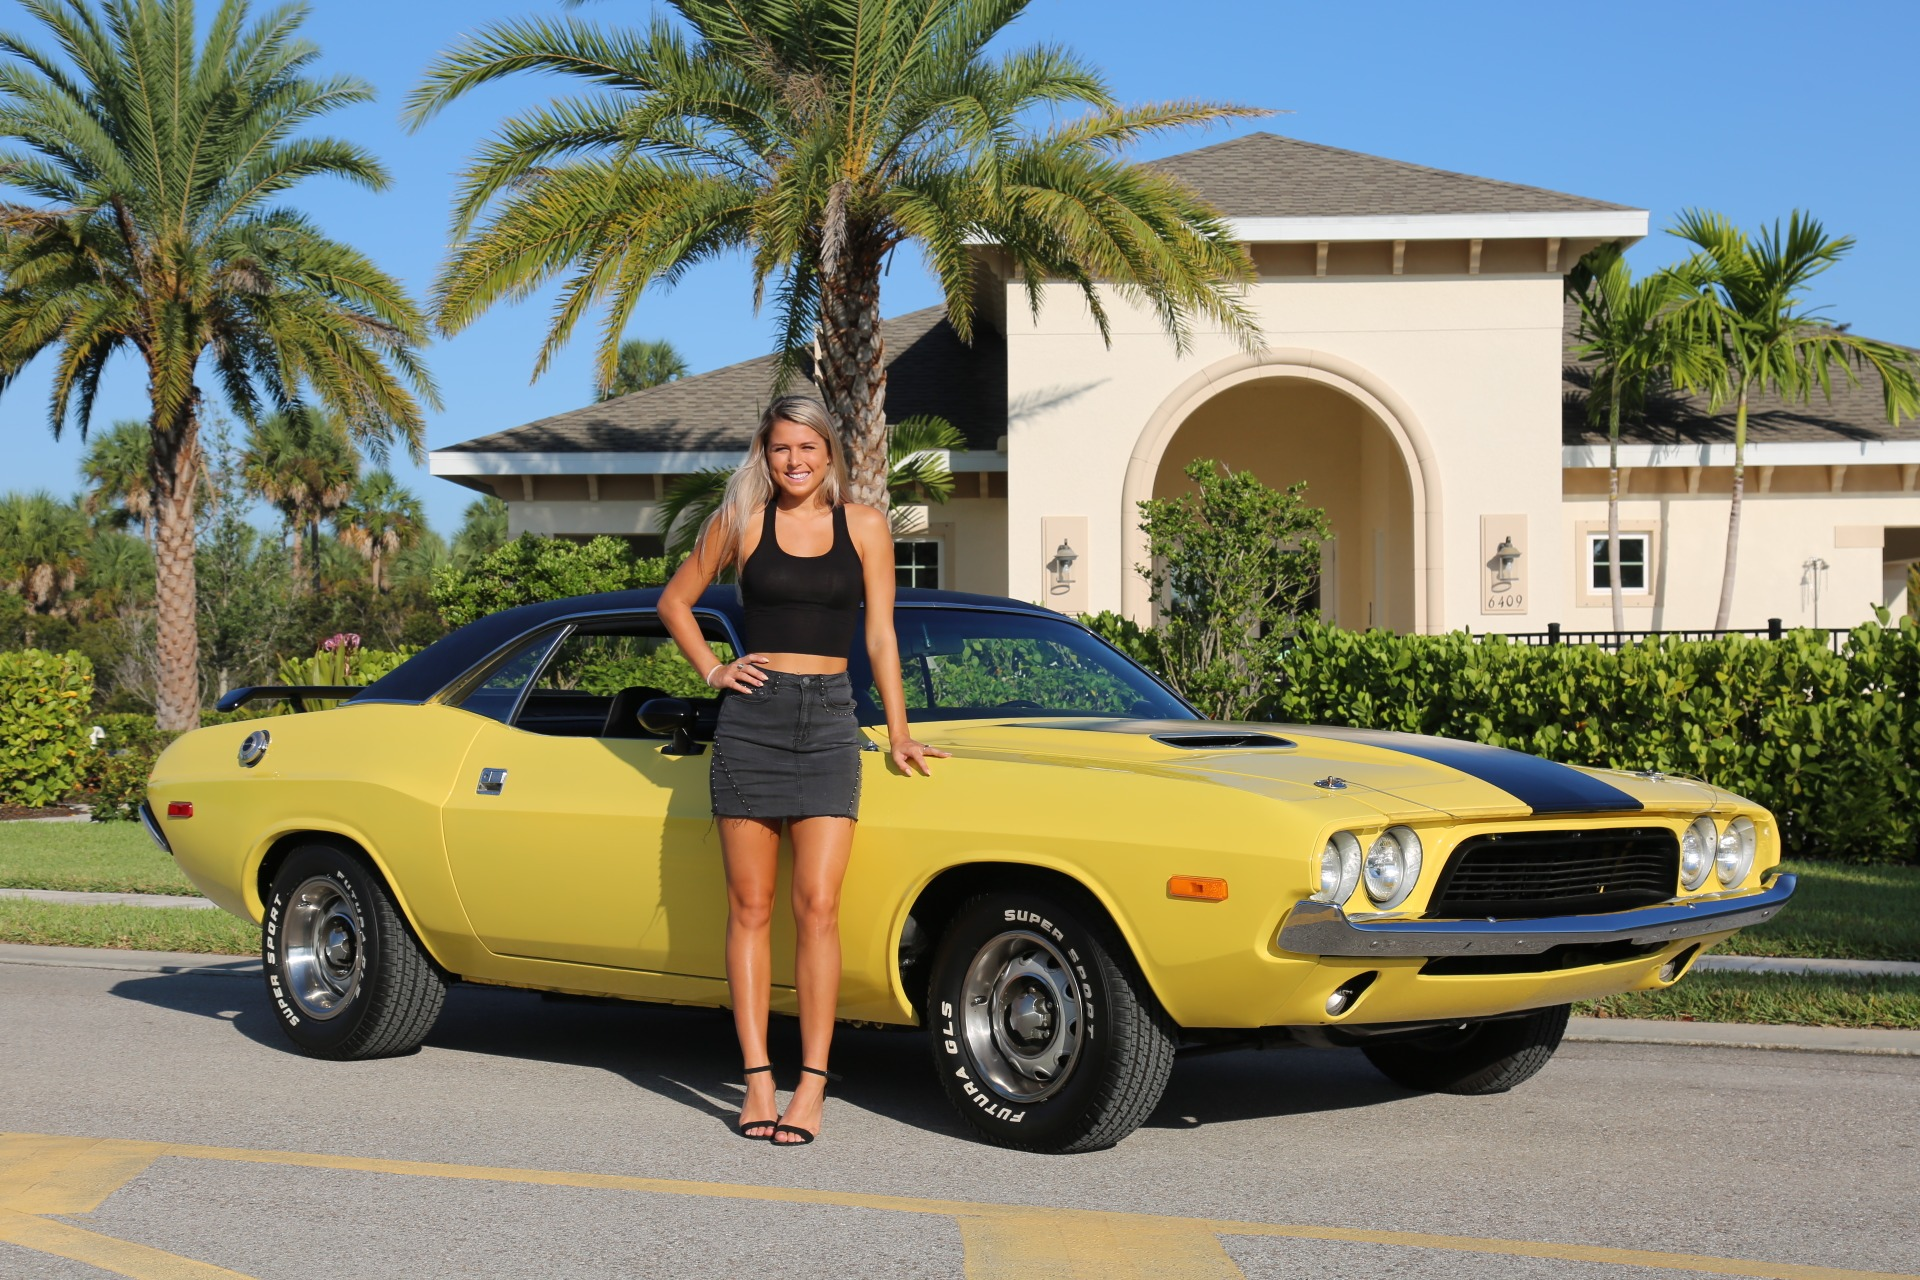 Used 1973 Dodge Challenger 440 V8 for sale Sold at Muscle Cars for Sale Inc. in Fort Myers FL 33912 4